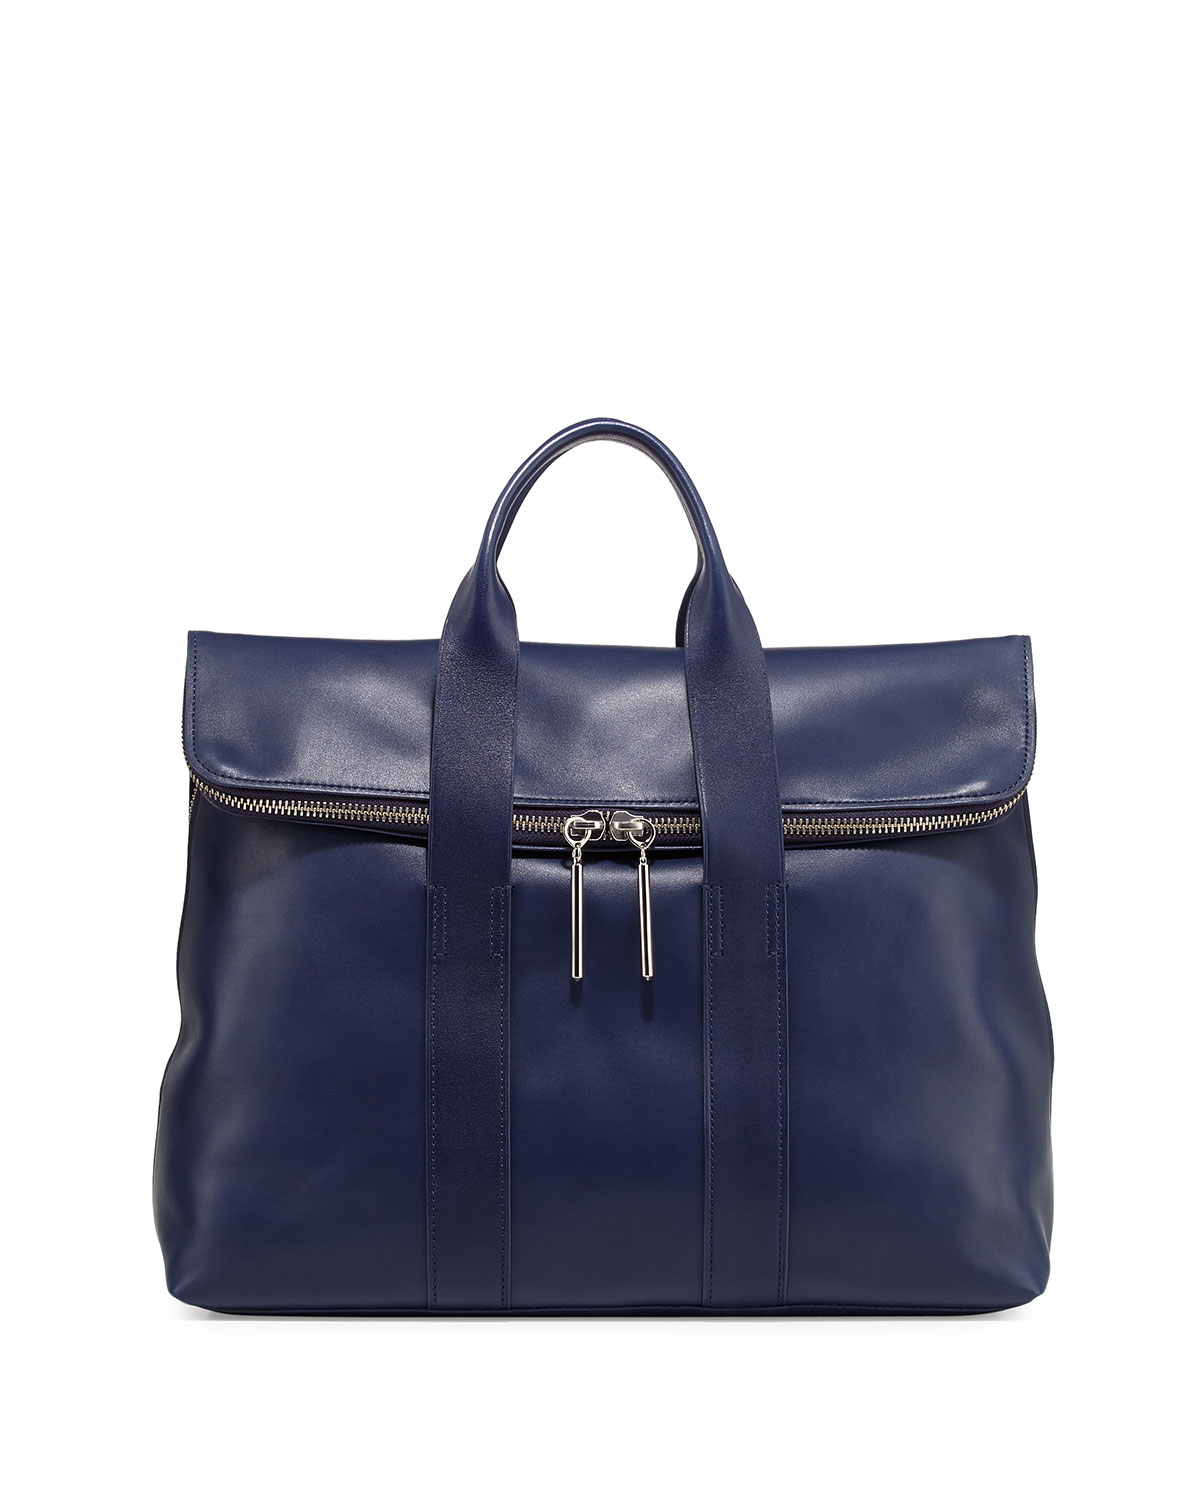 31 Toe Nail Art Designs Ideas: 3.1 Phillip Lim 31-hour Fold-over Tote Bag In Blue (NAVY